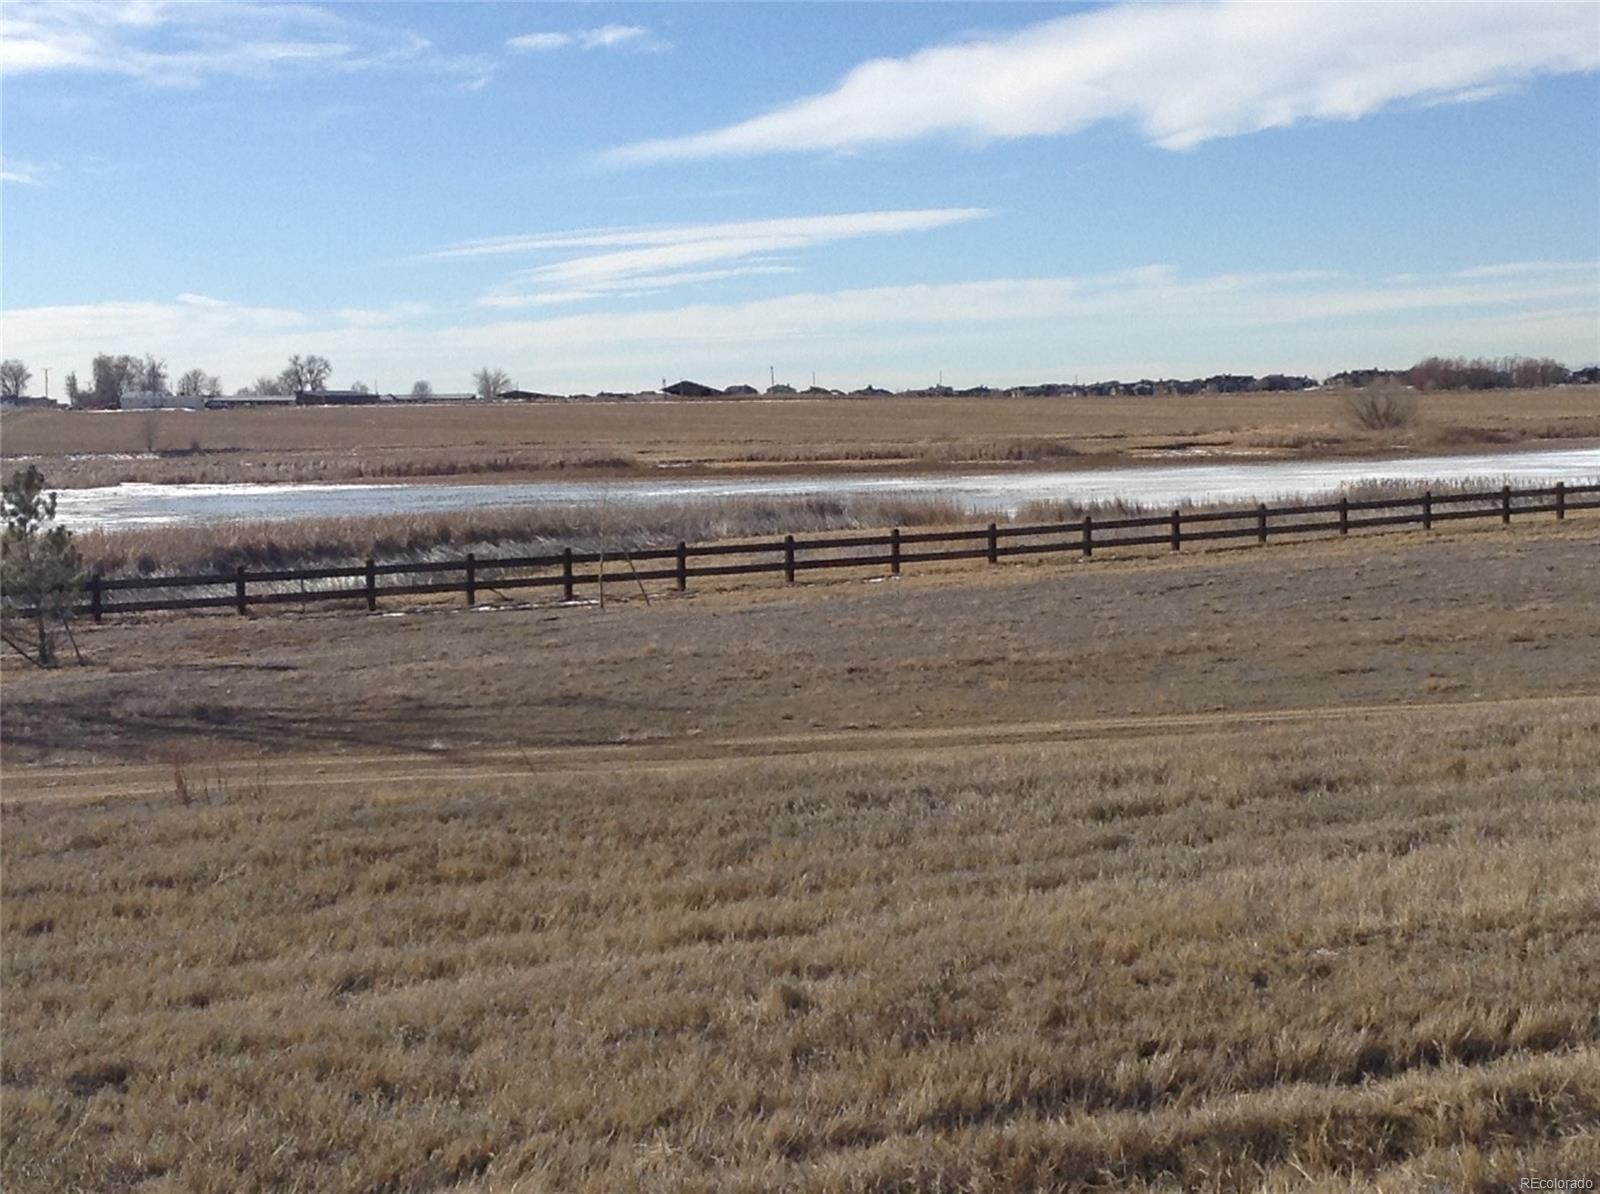 Lot 1, Block 2 Wildview Drive, Timnath, CO 80547 - Timnath, CO real estate listing